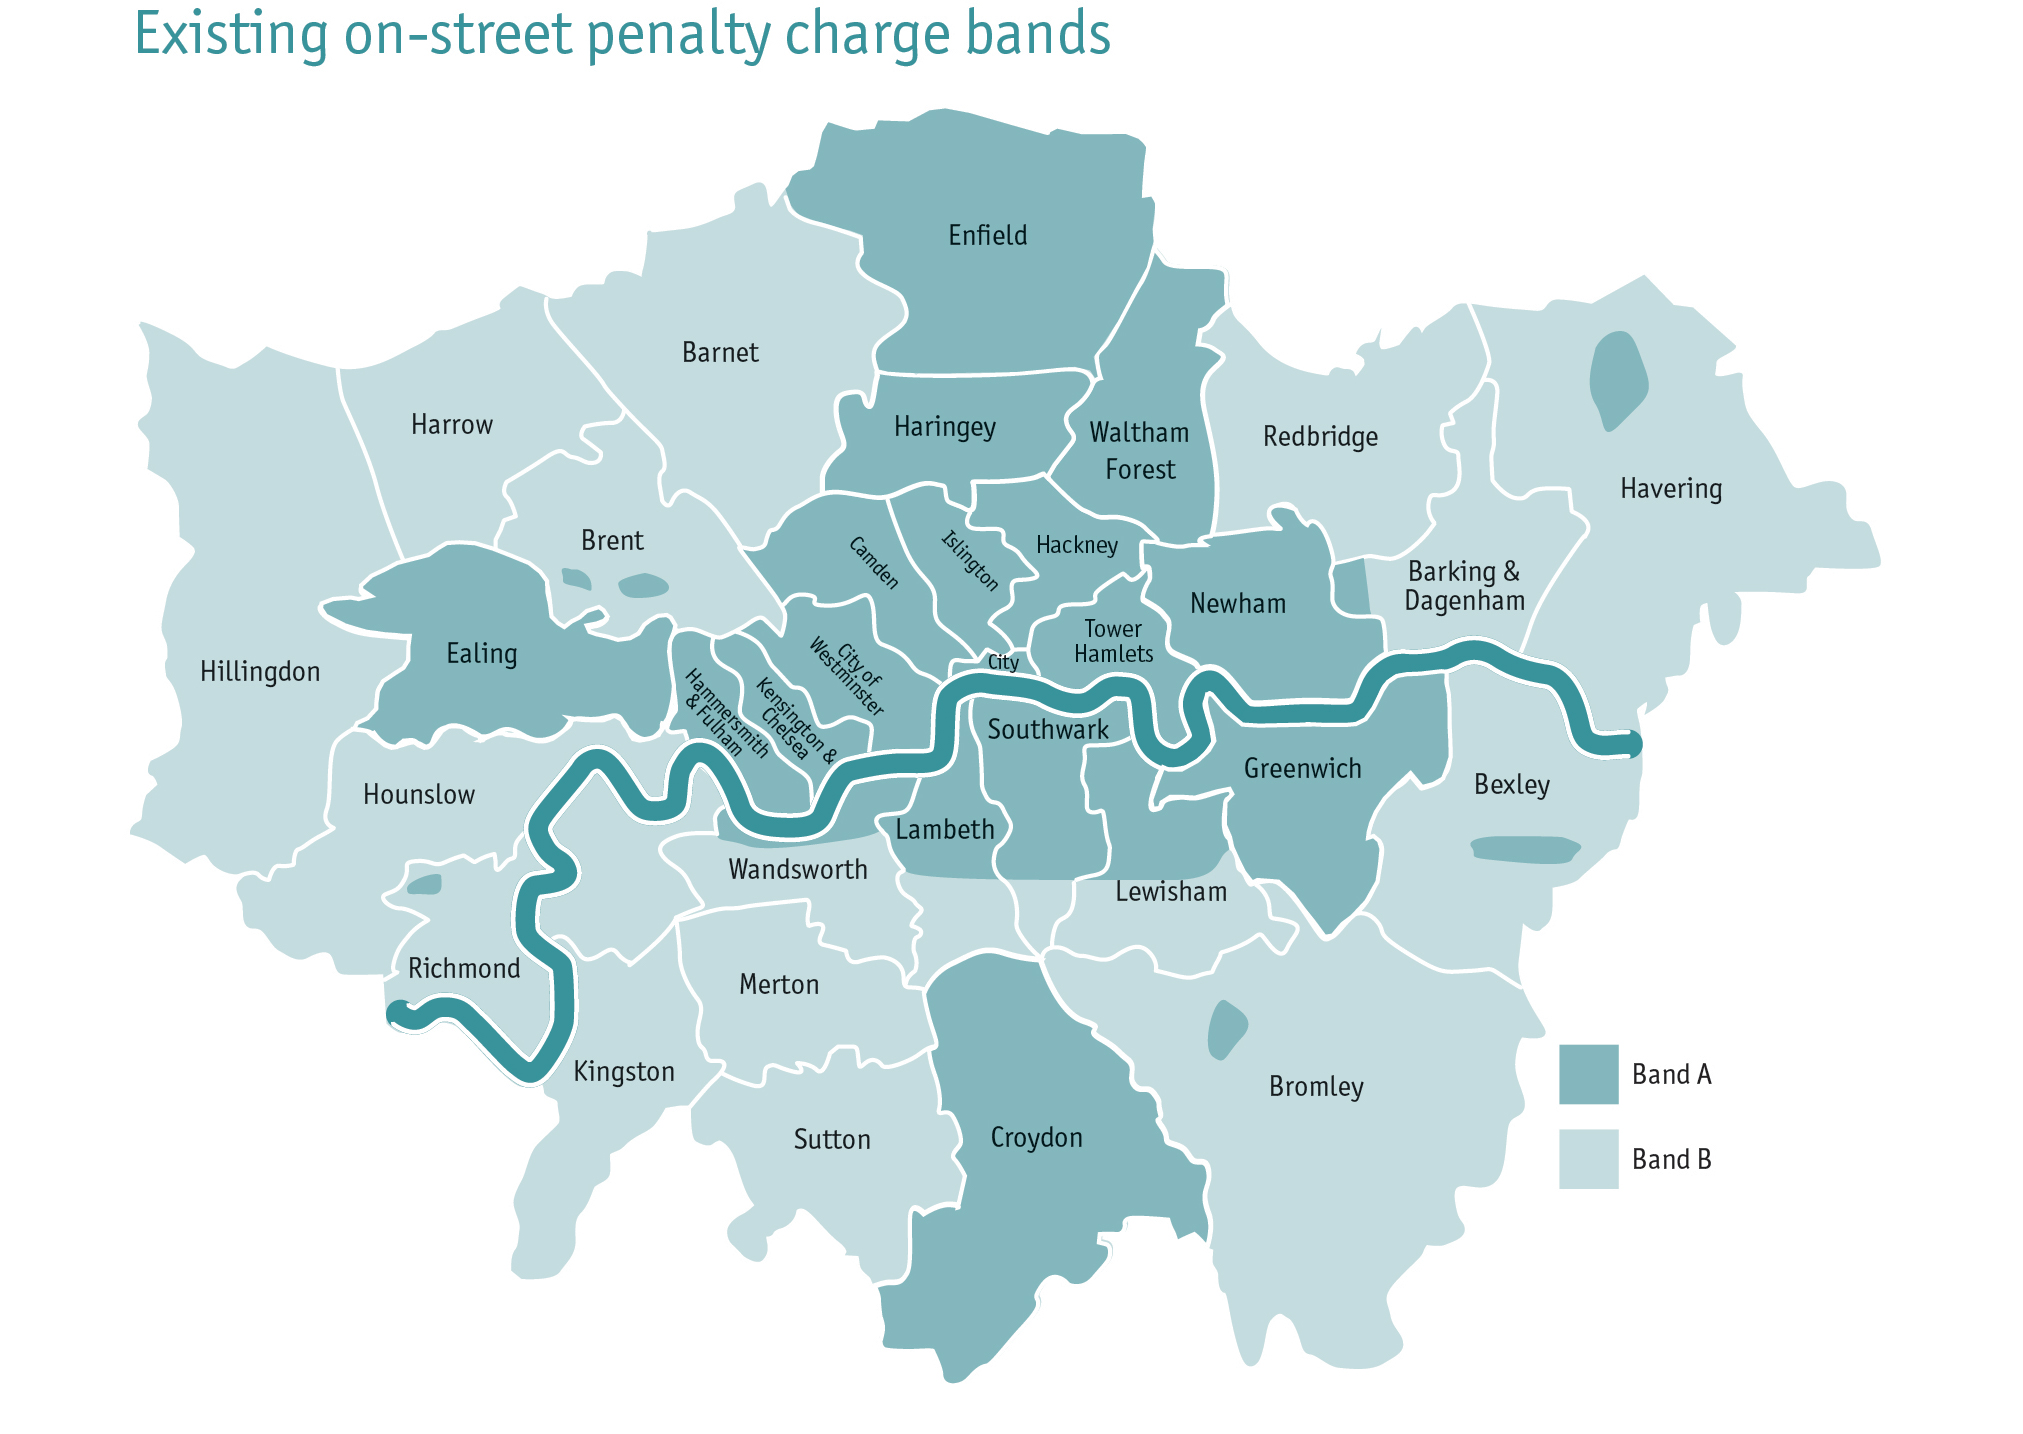 Exiting on-street penalty charge bands London map 2021